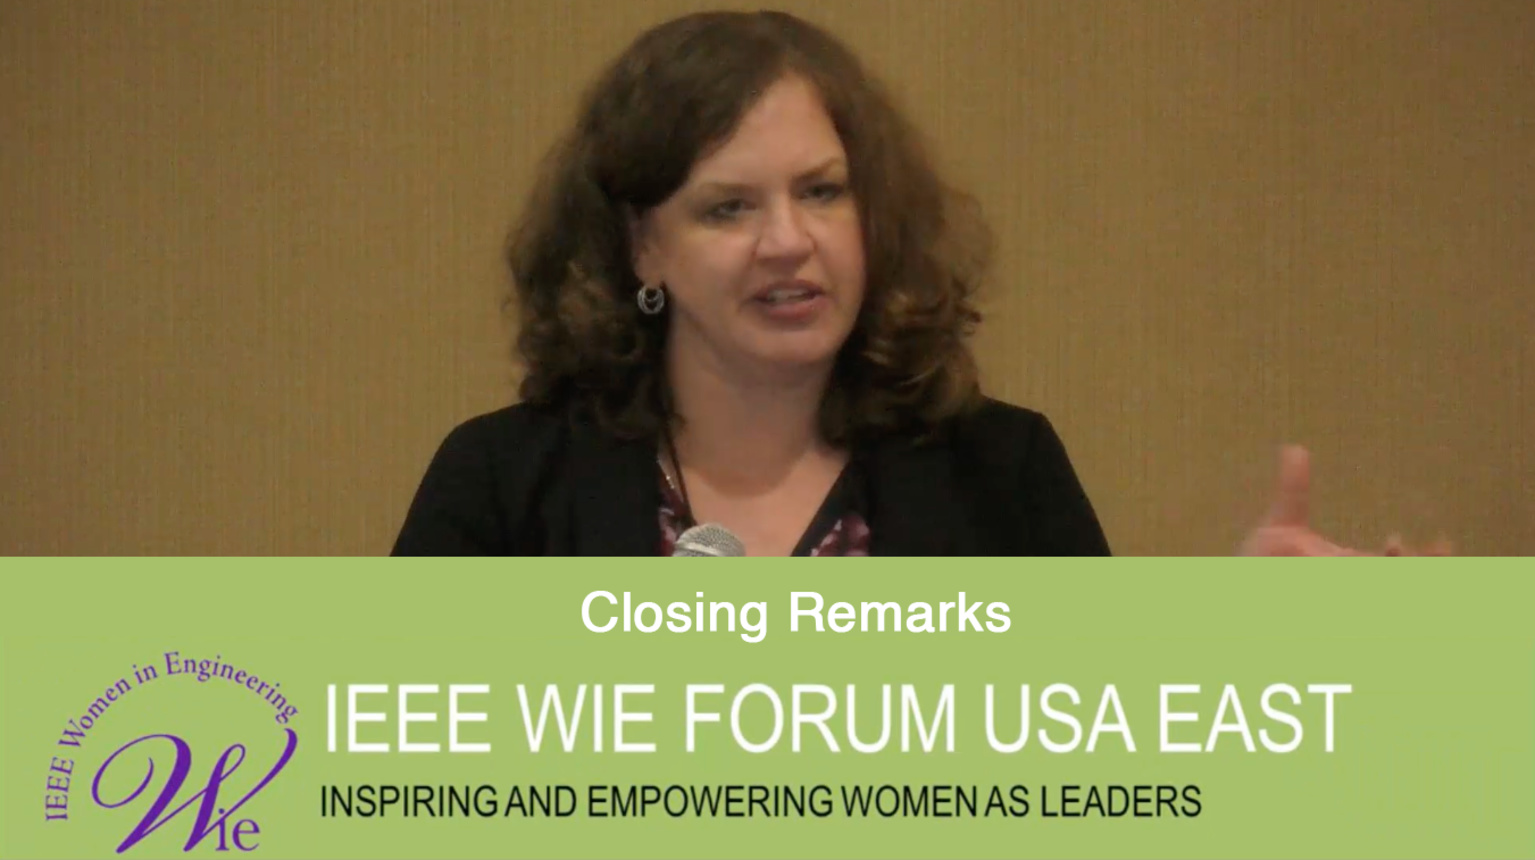 Closing Remarks: IEEE WIE Forum USA East 2017